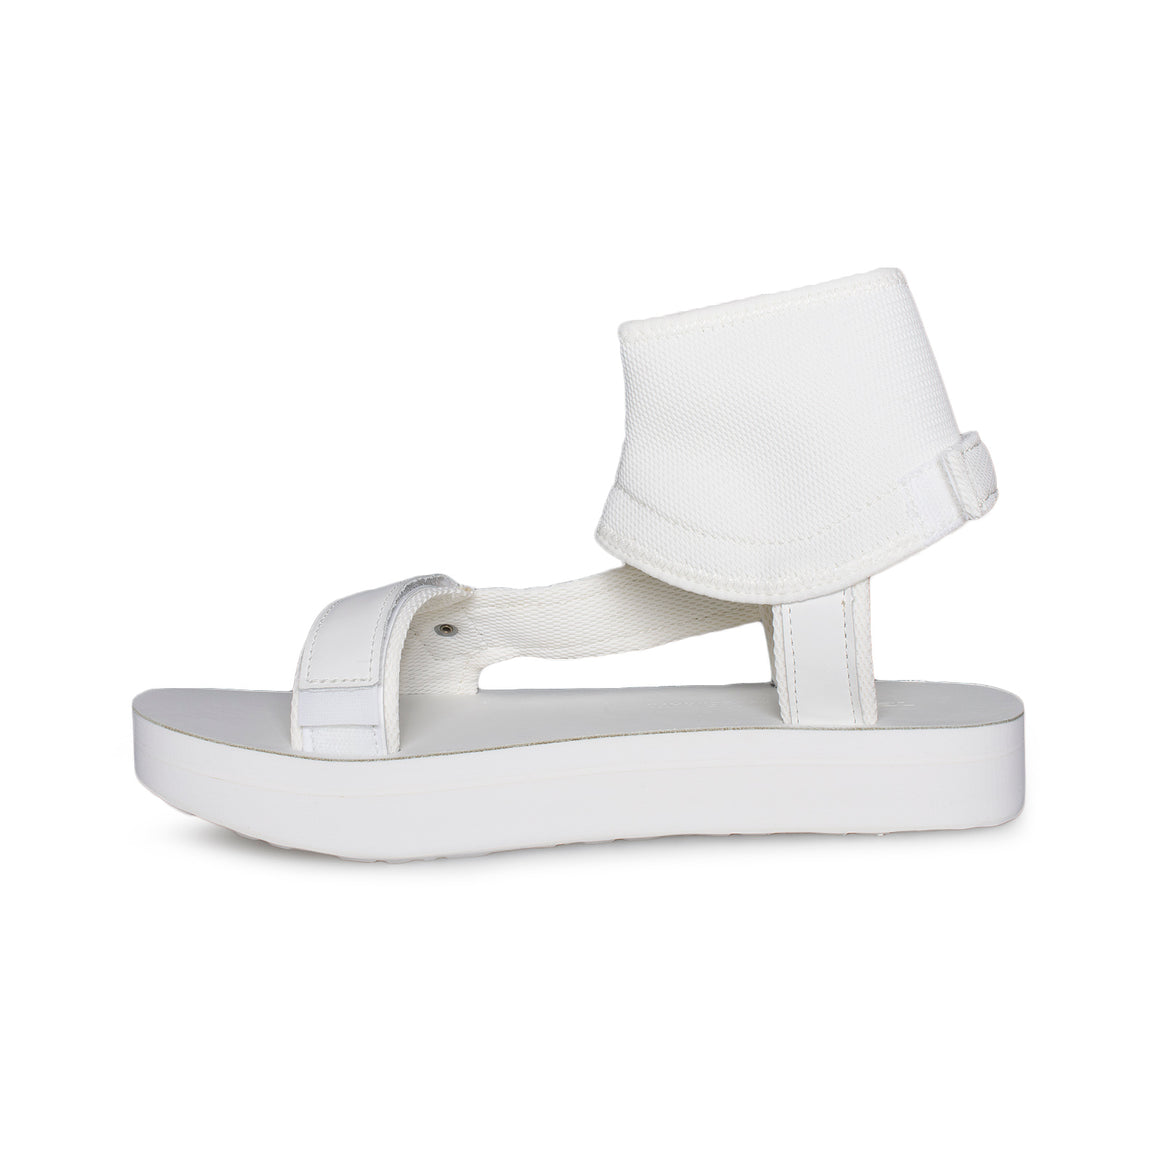 Teva Han Kjobenhavn 2 White Sandals - Men's